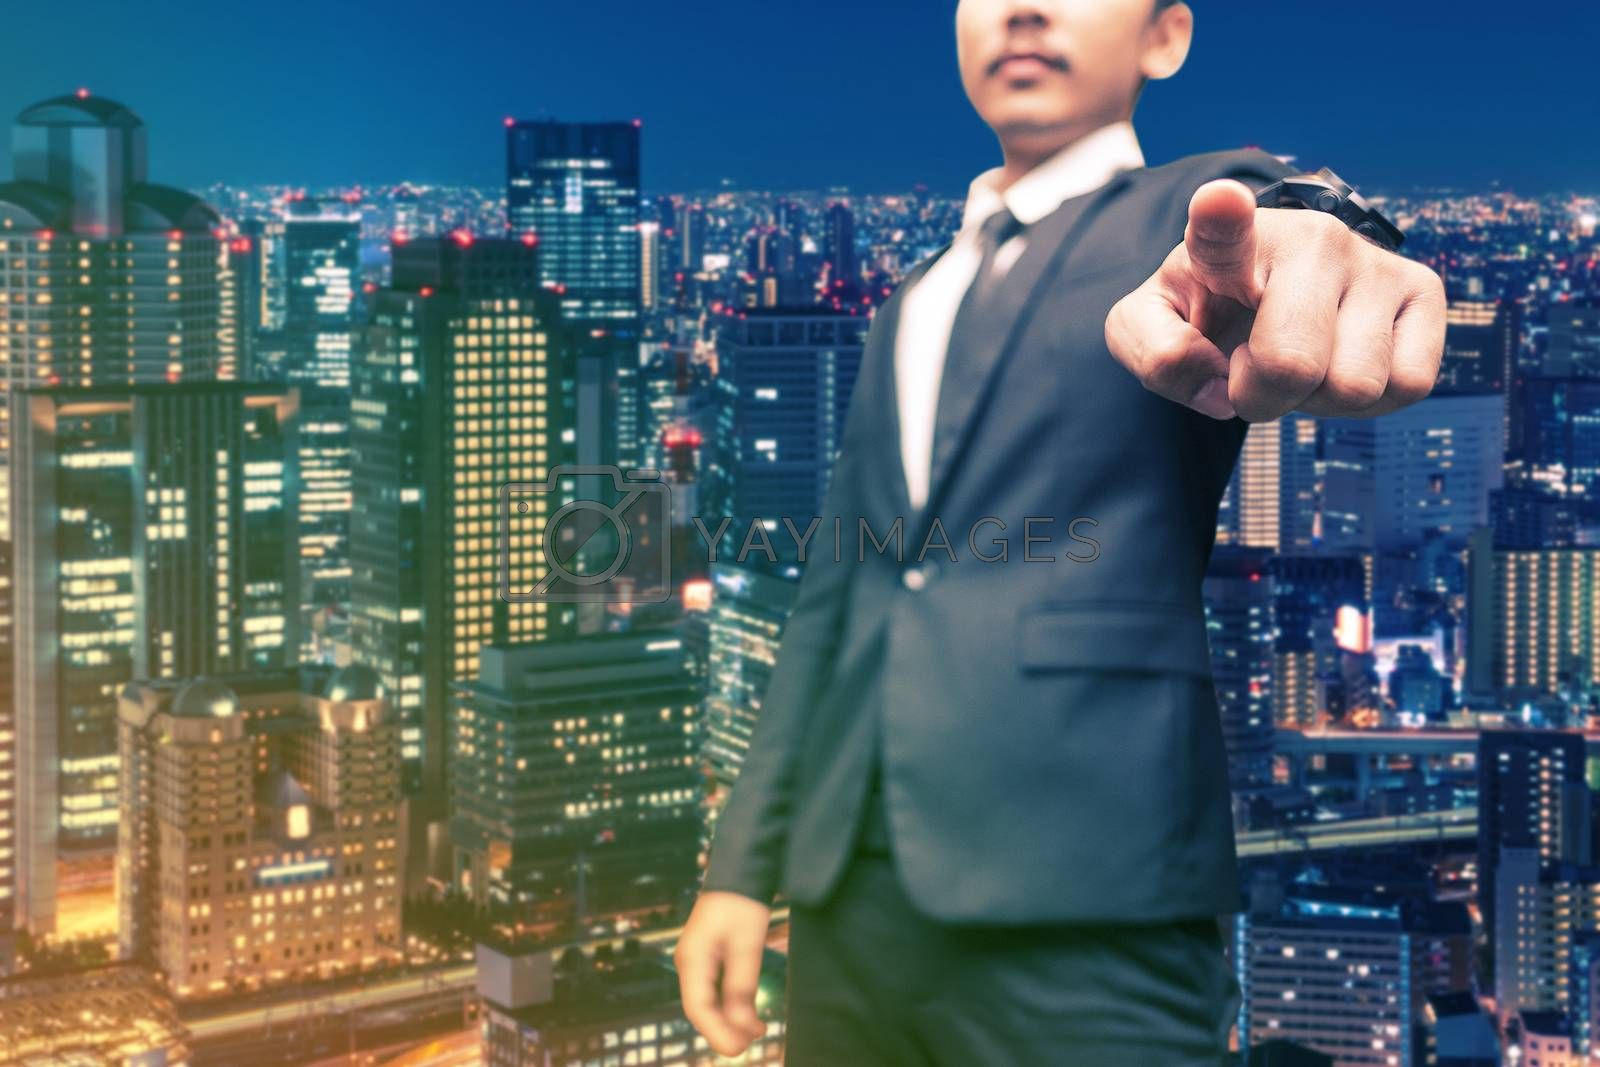 man in suit on a building business wall background